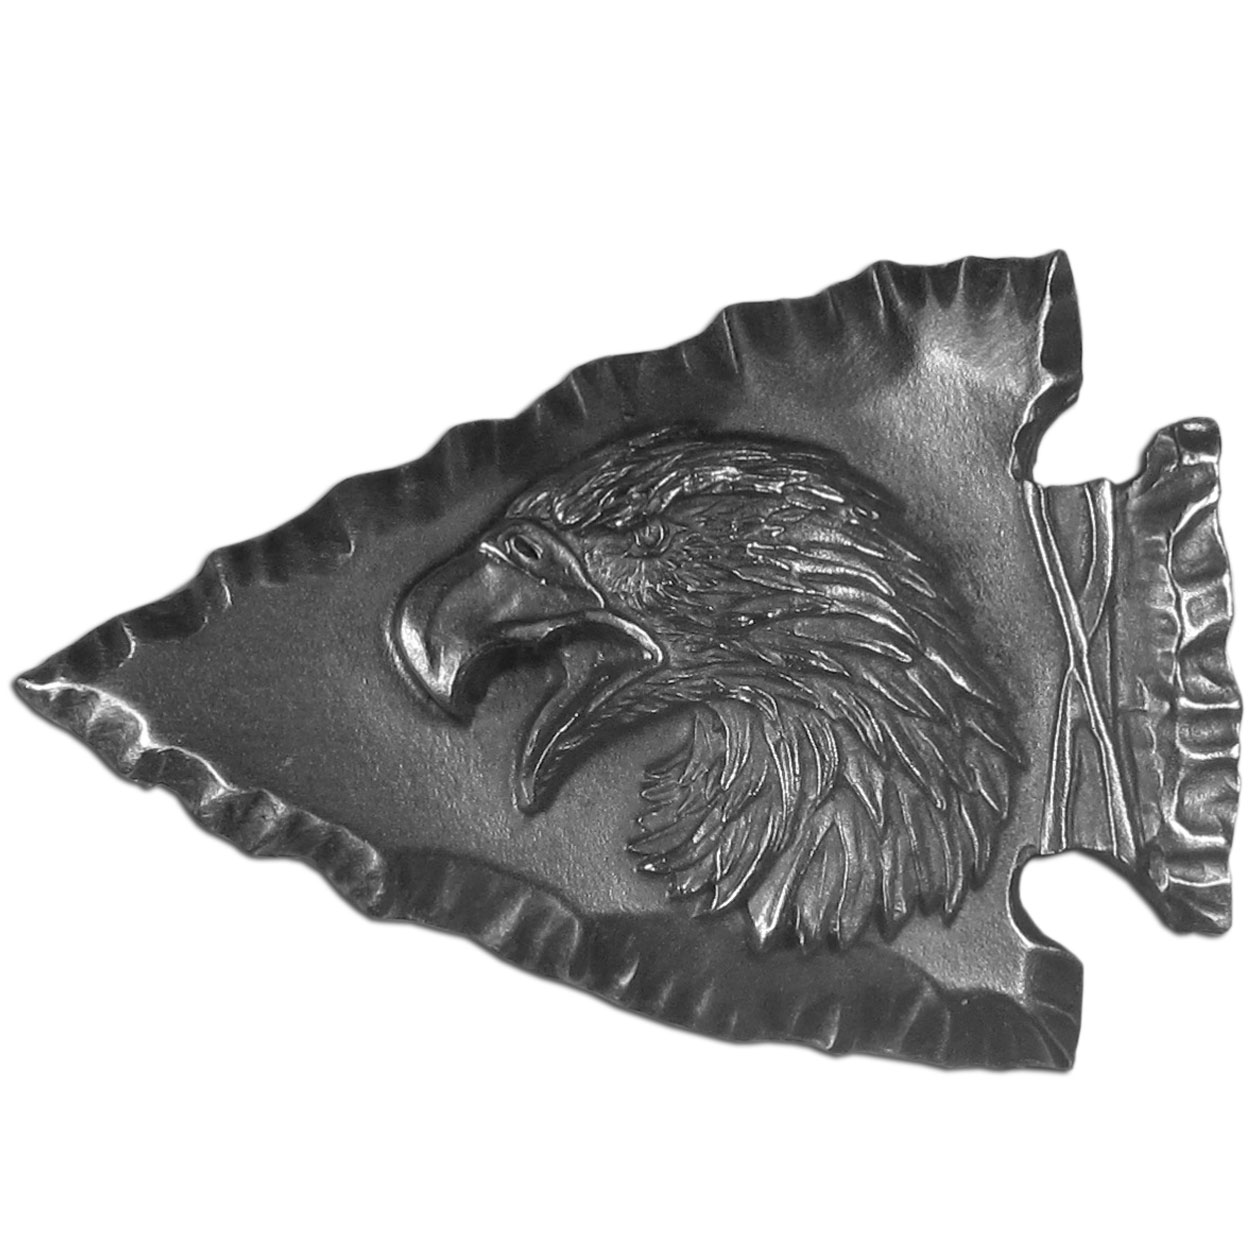 "Eagle Head Antiqued Buckle - ""his beautifully carved image is a Native American arrowhead with an eagle head on top of it.  Buckle is made of fully cast metal with a standard bale that fits up to 2"""" belts.This finely sculpted belt buckle contains exceptional 3D detailing. Siskiyou's unique buckle designs often become collector's items and are unequaled with the best craftsmanship."""